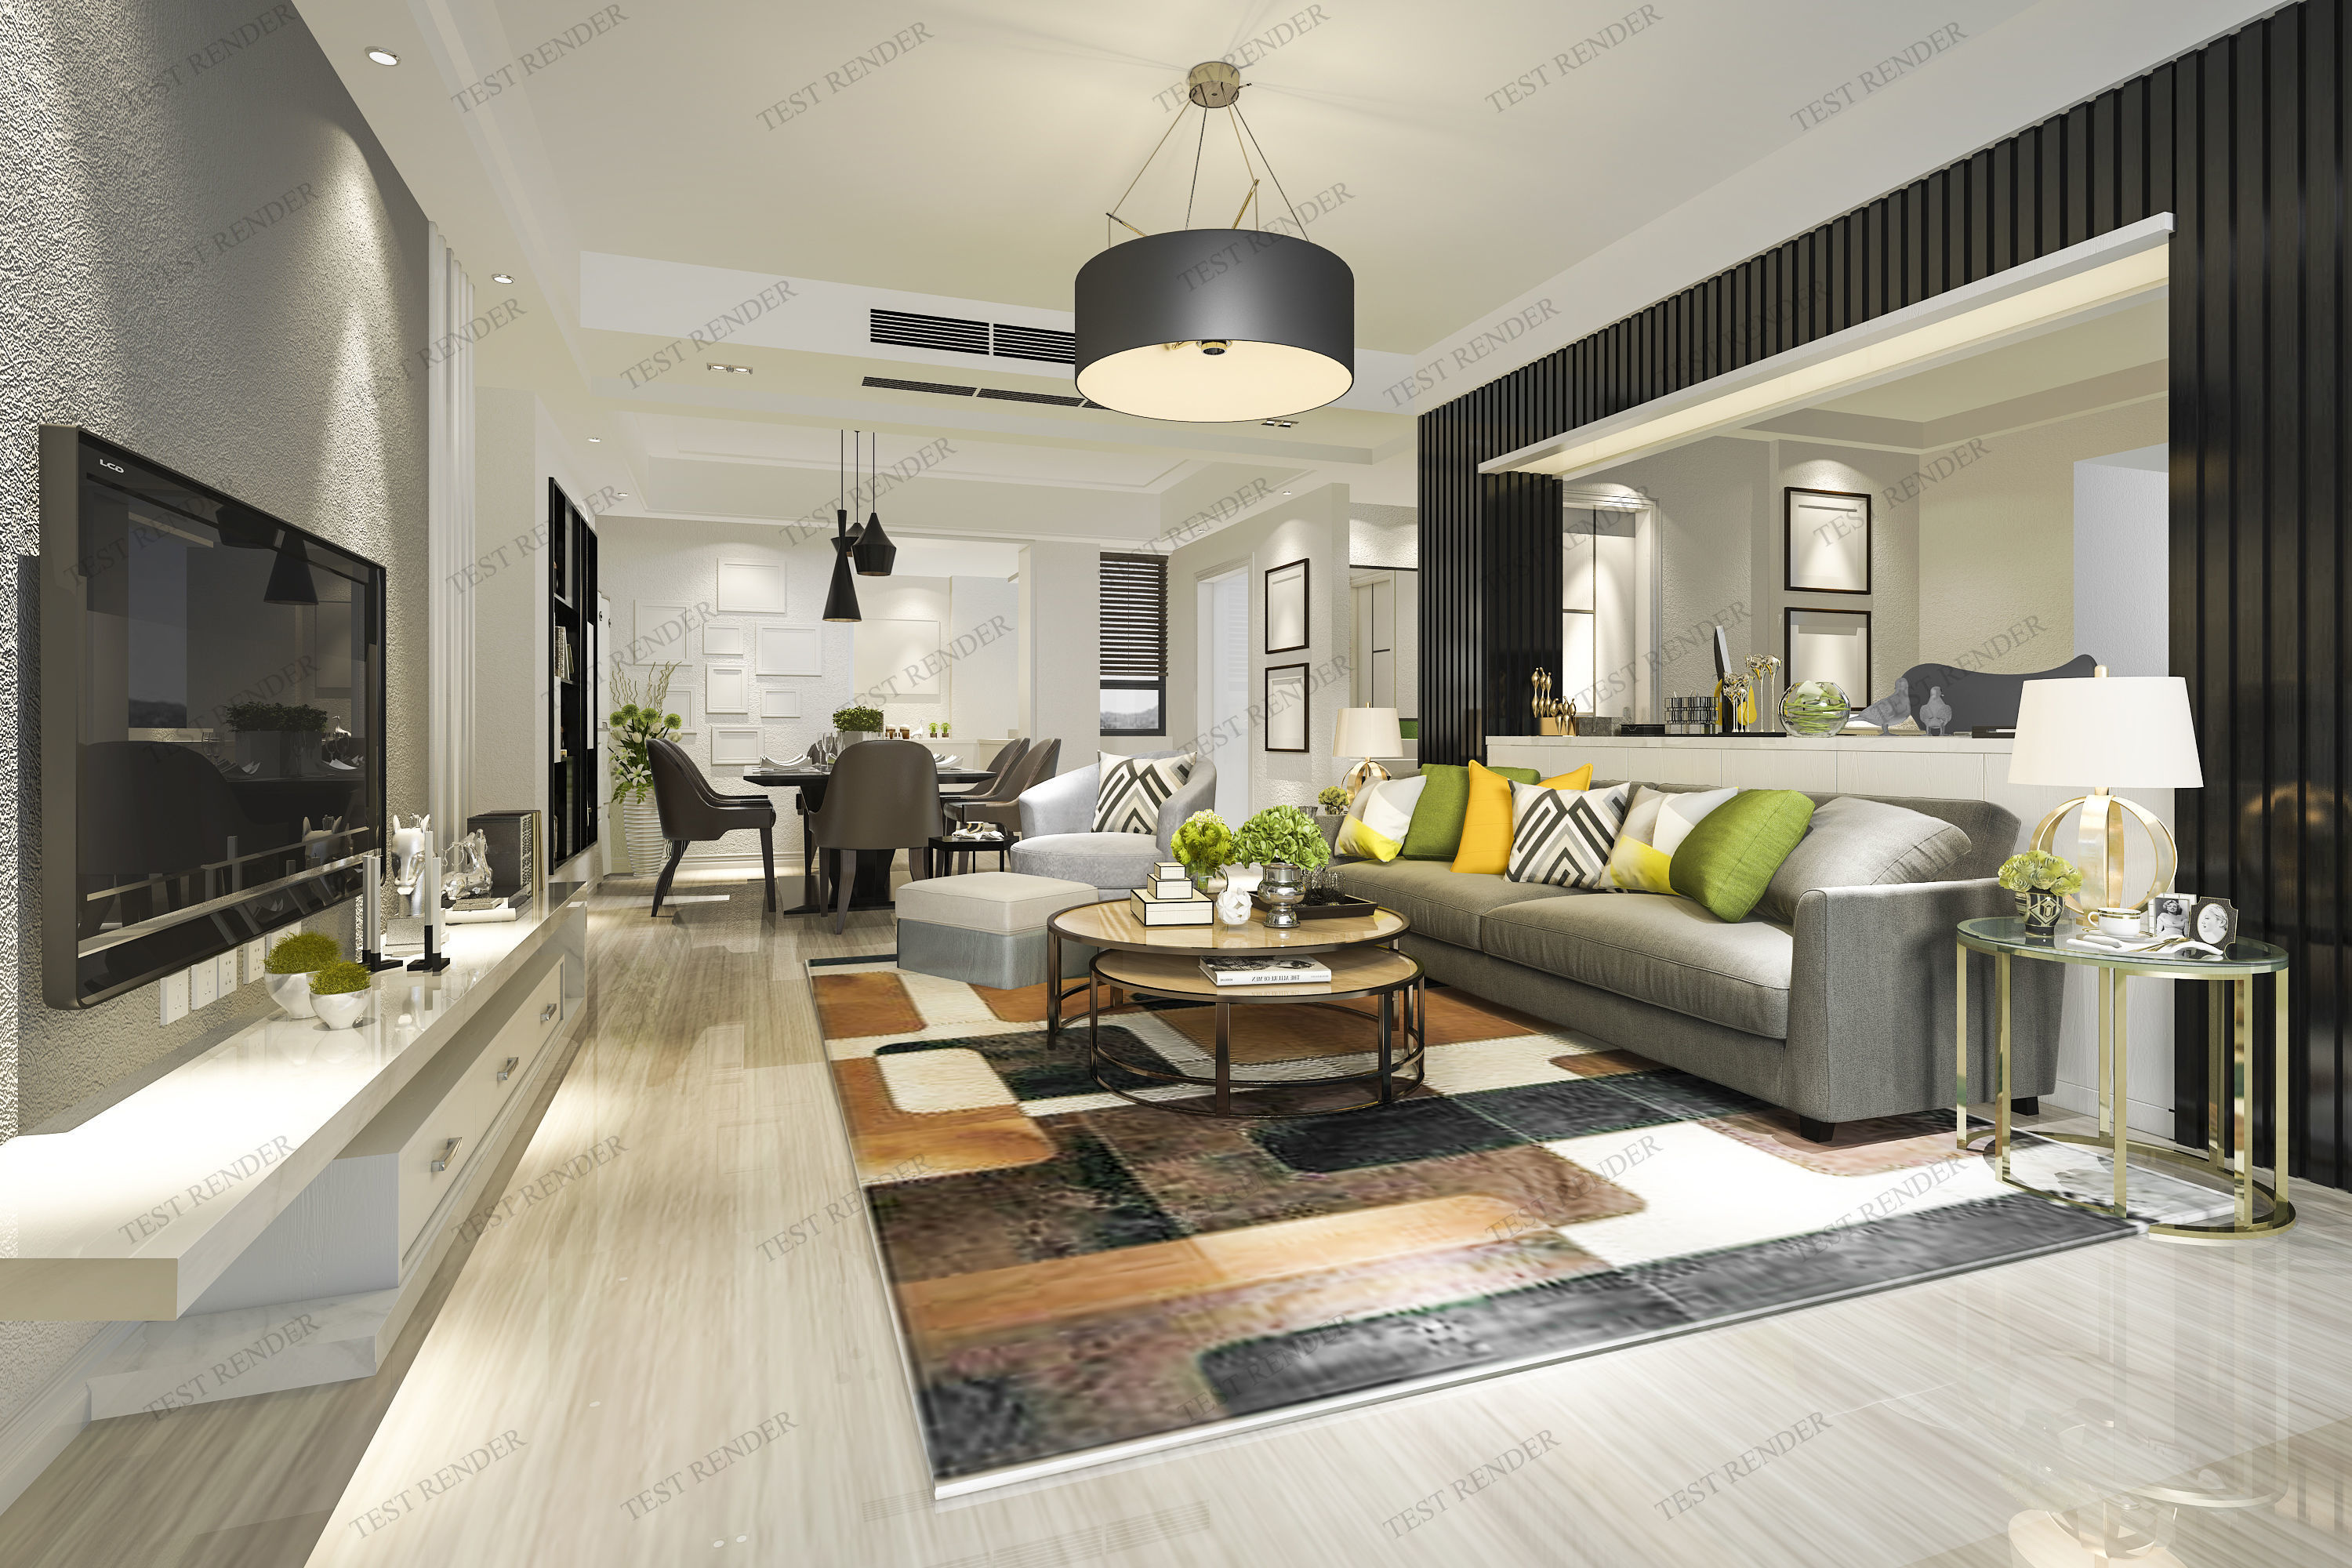 Modern living room and dining room 3d model sofa - Free interior design ideas for living rooms ...